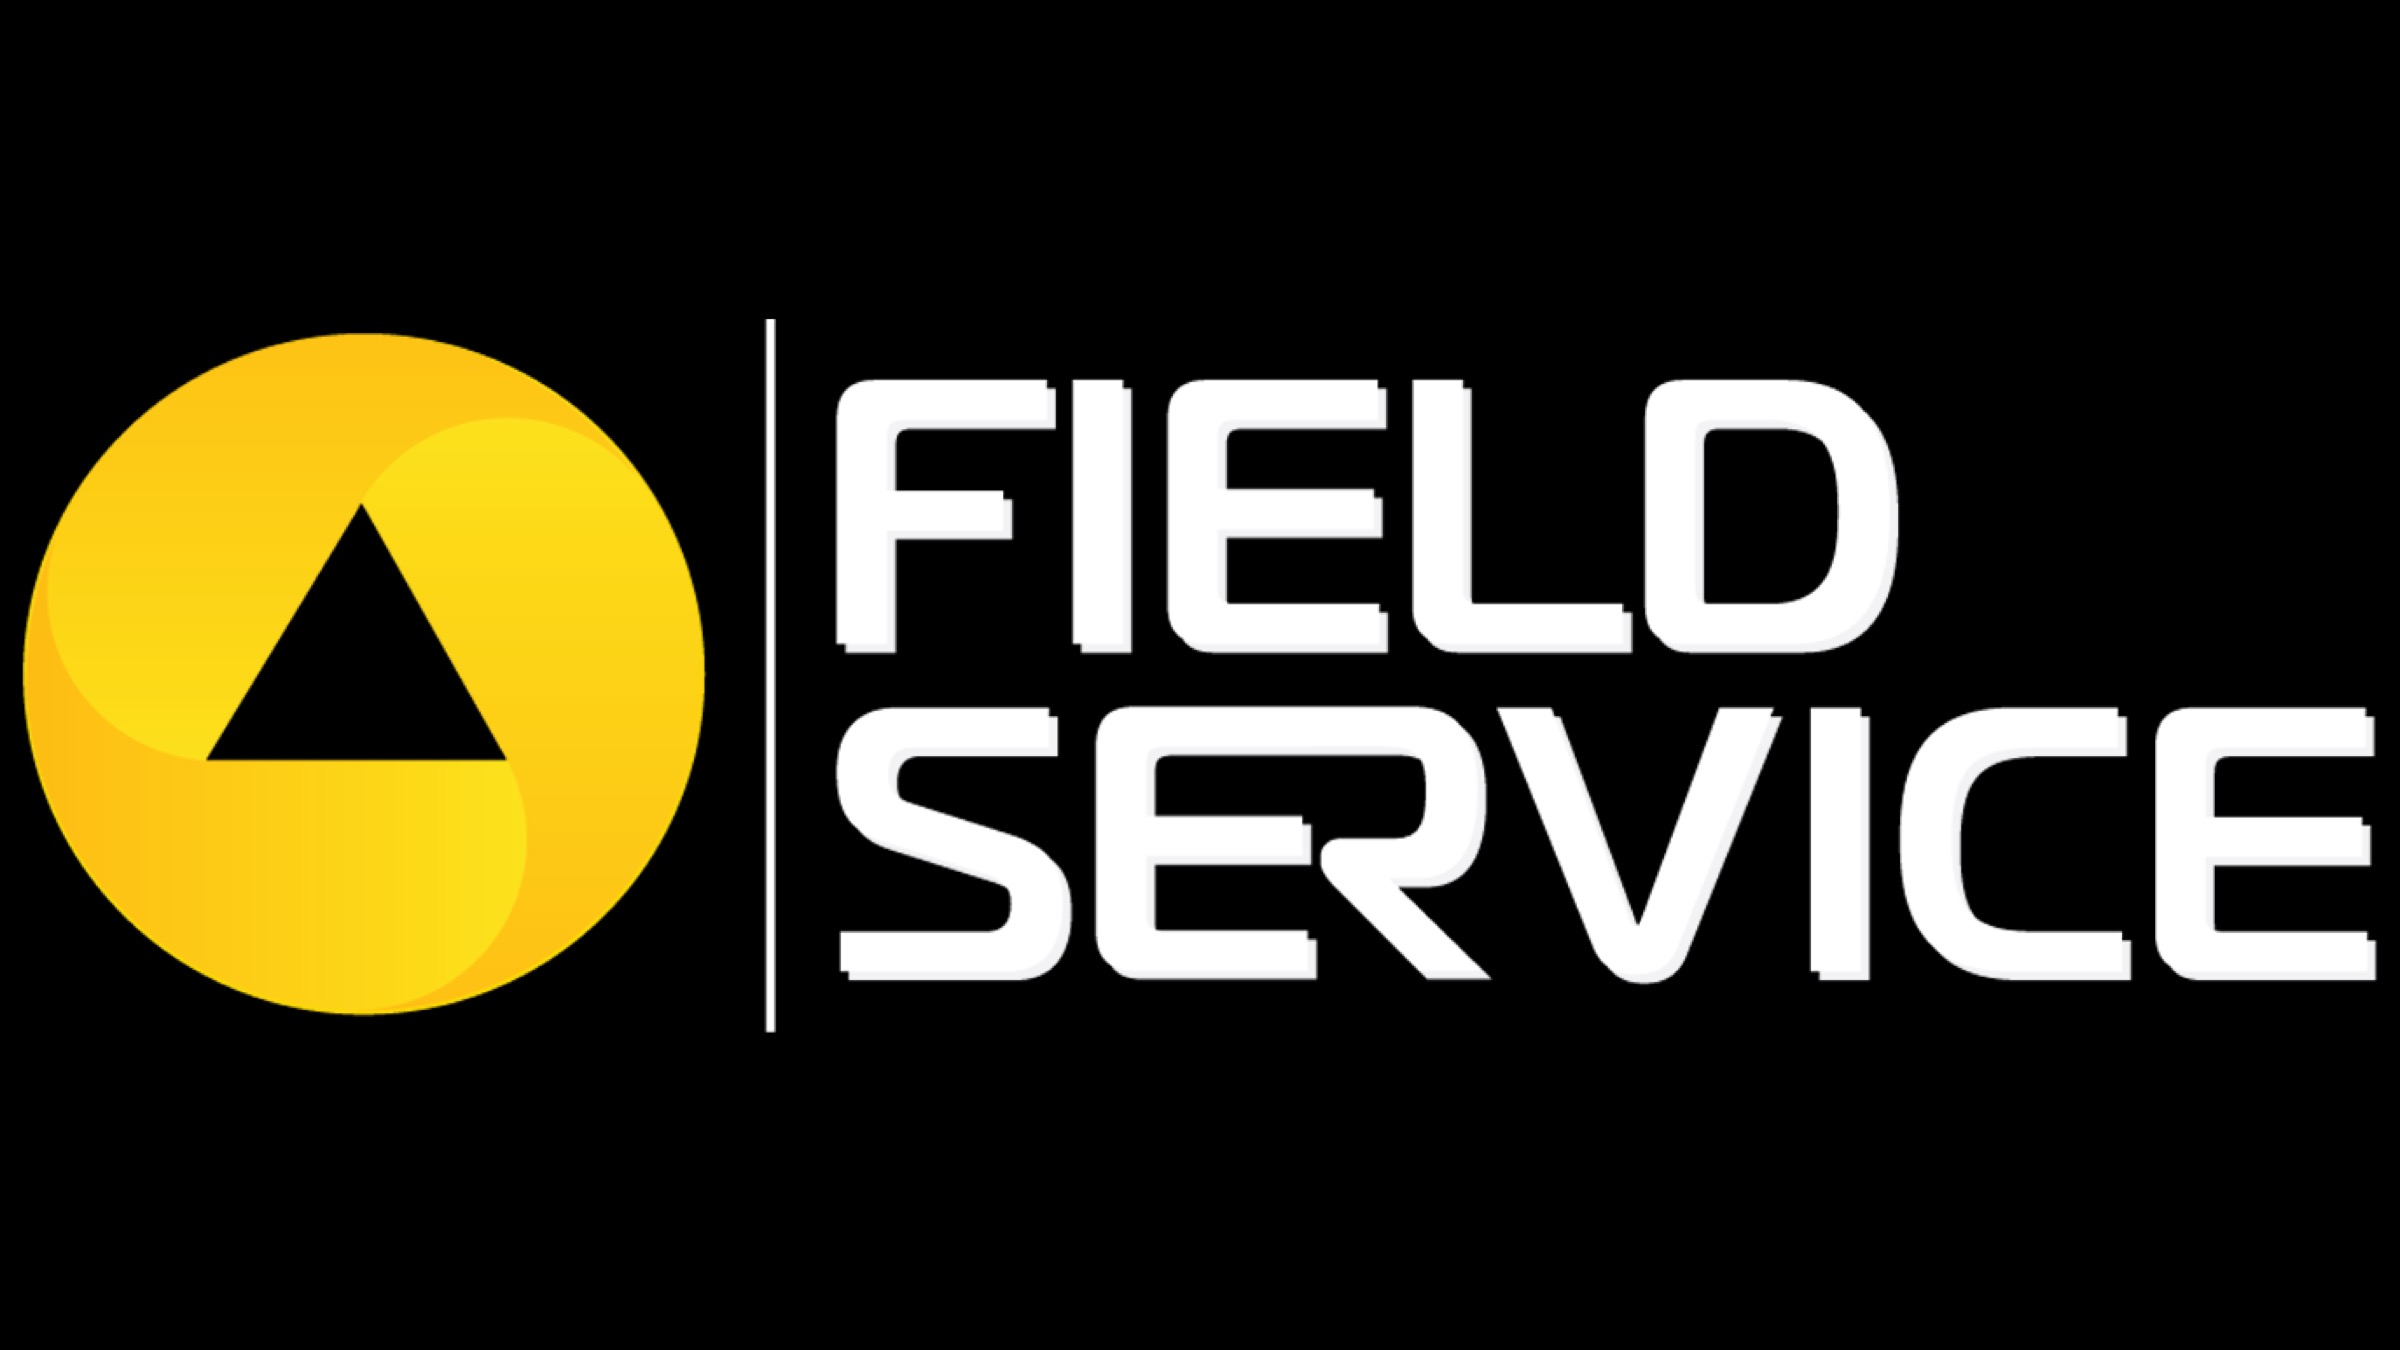 field service graphic